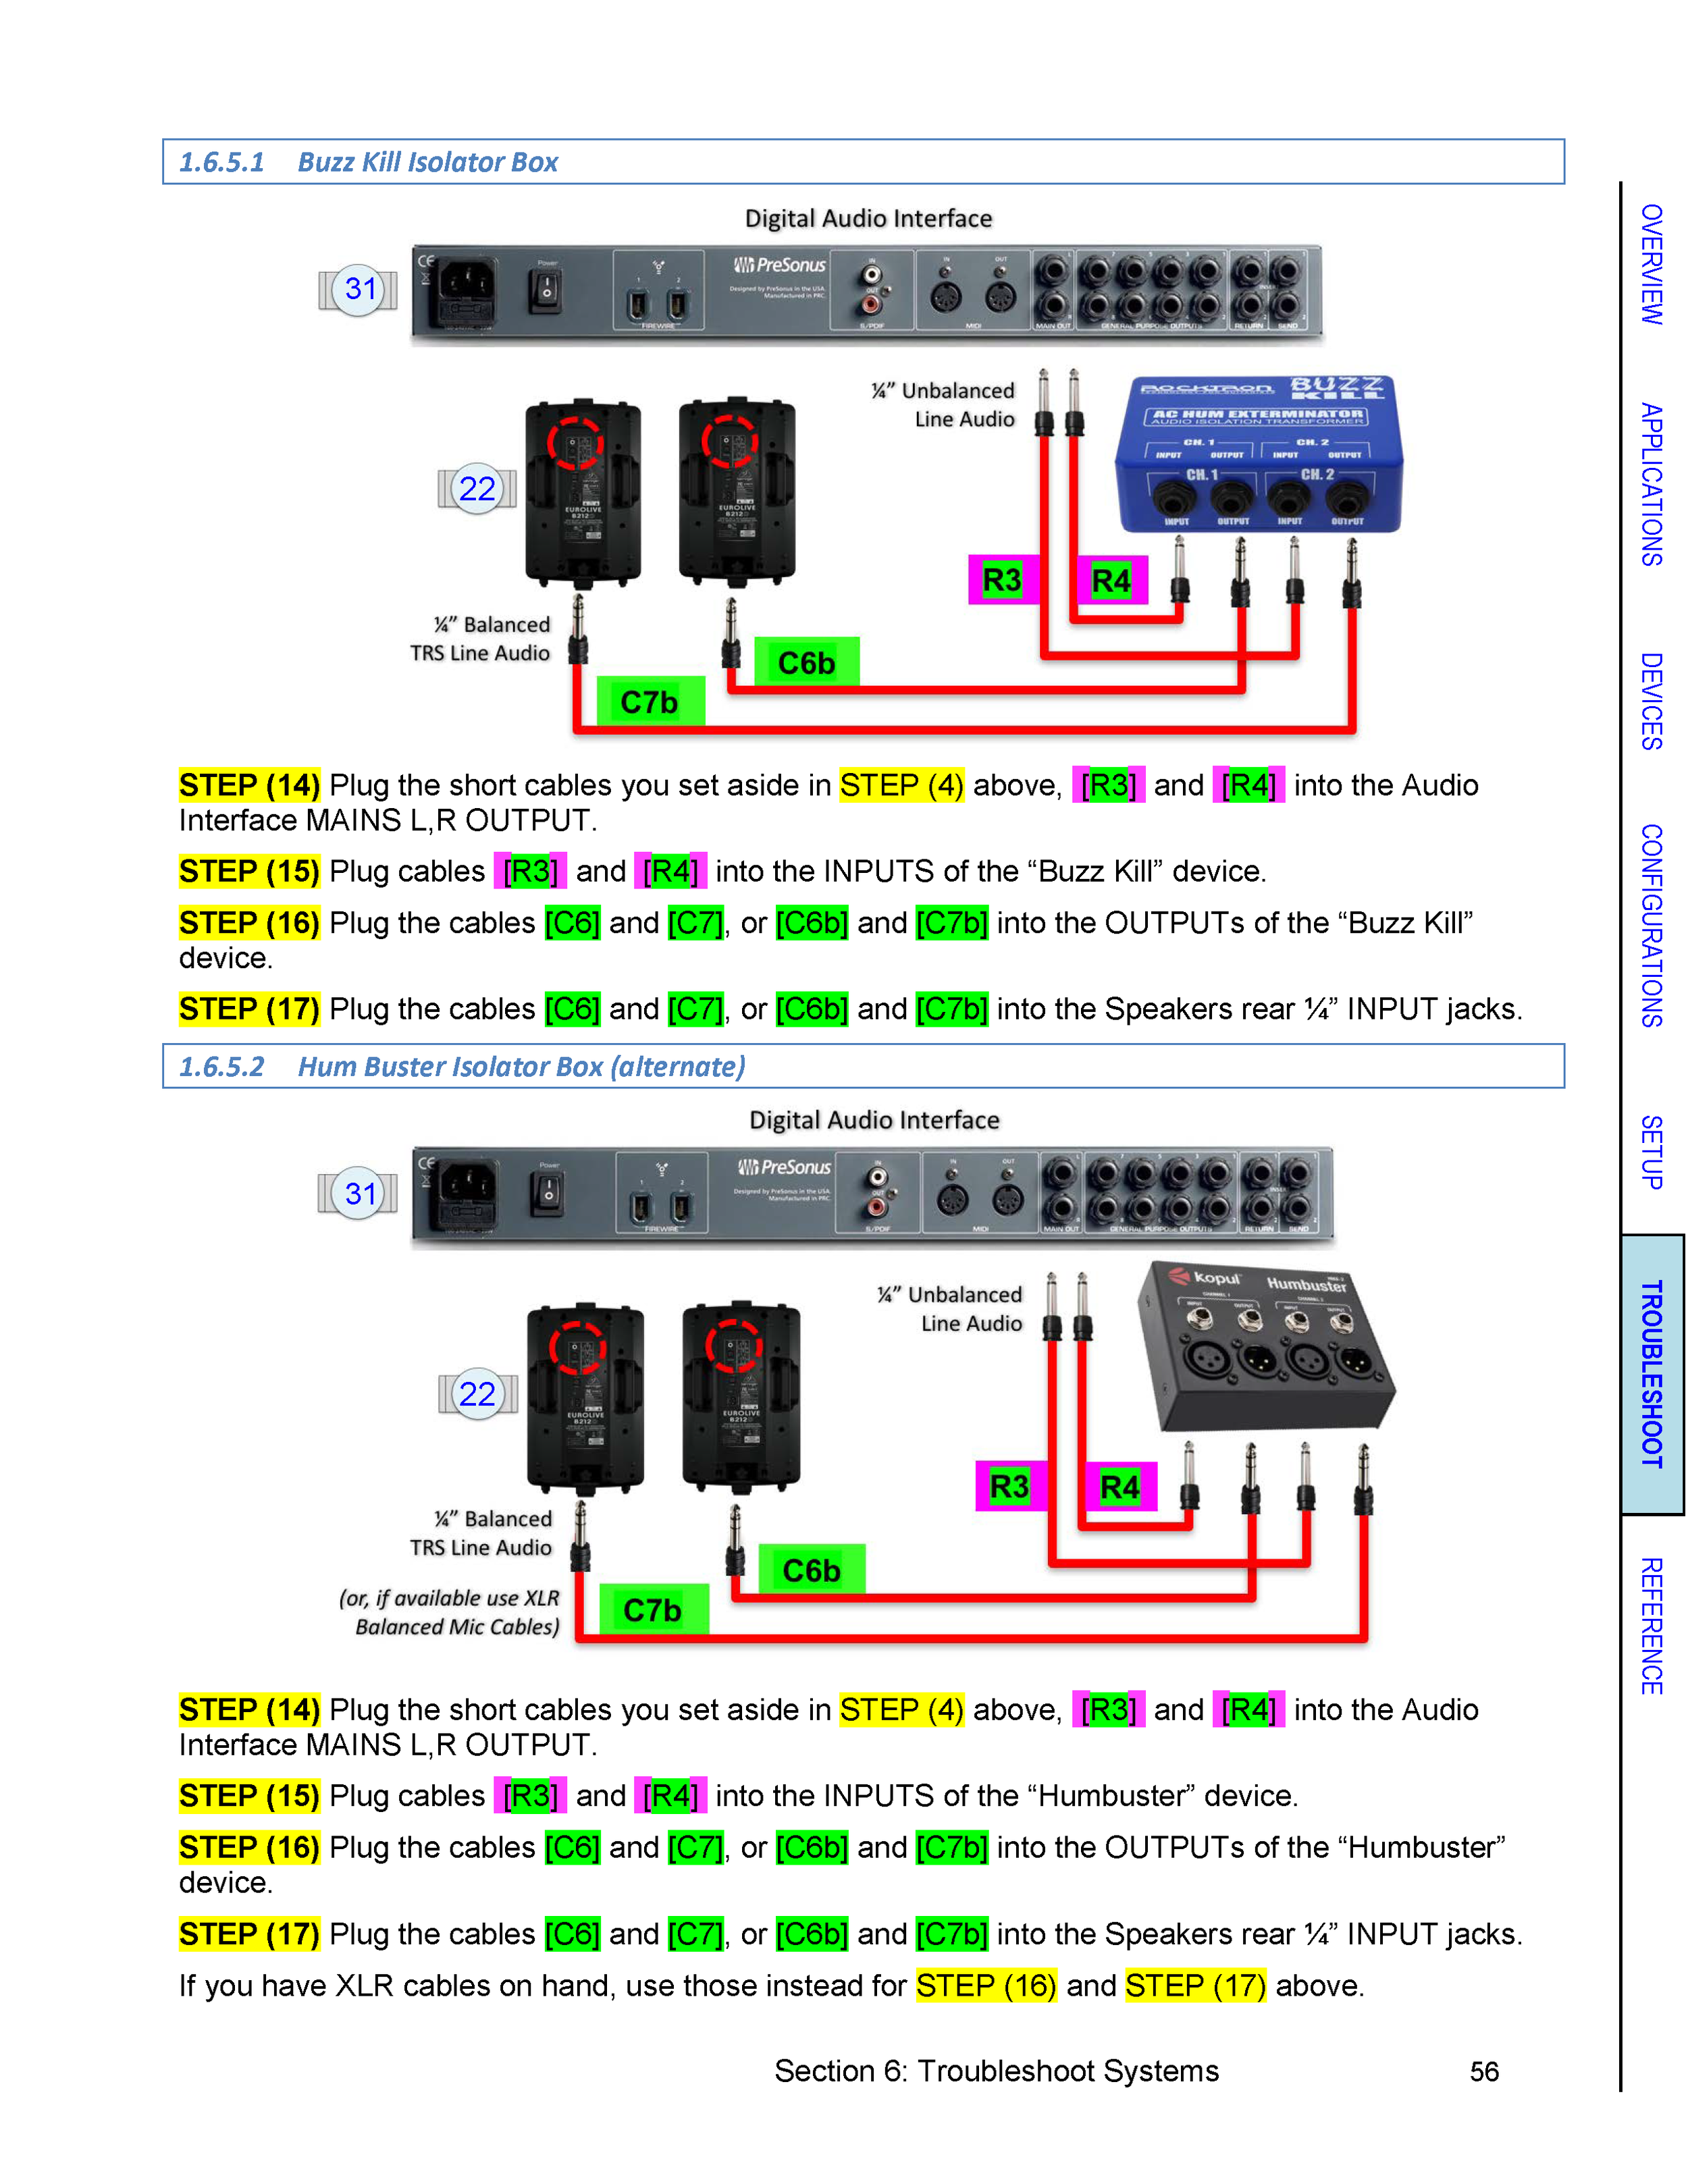 SpaceHarp_Systems_User_Guide_Oct-9th-2017_released_Page_56.png